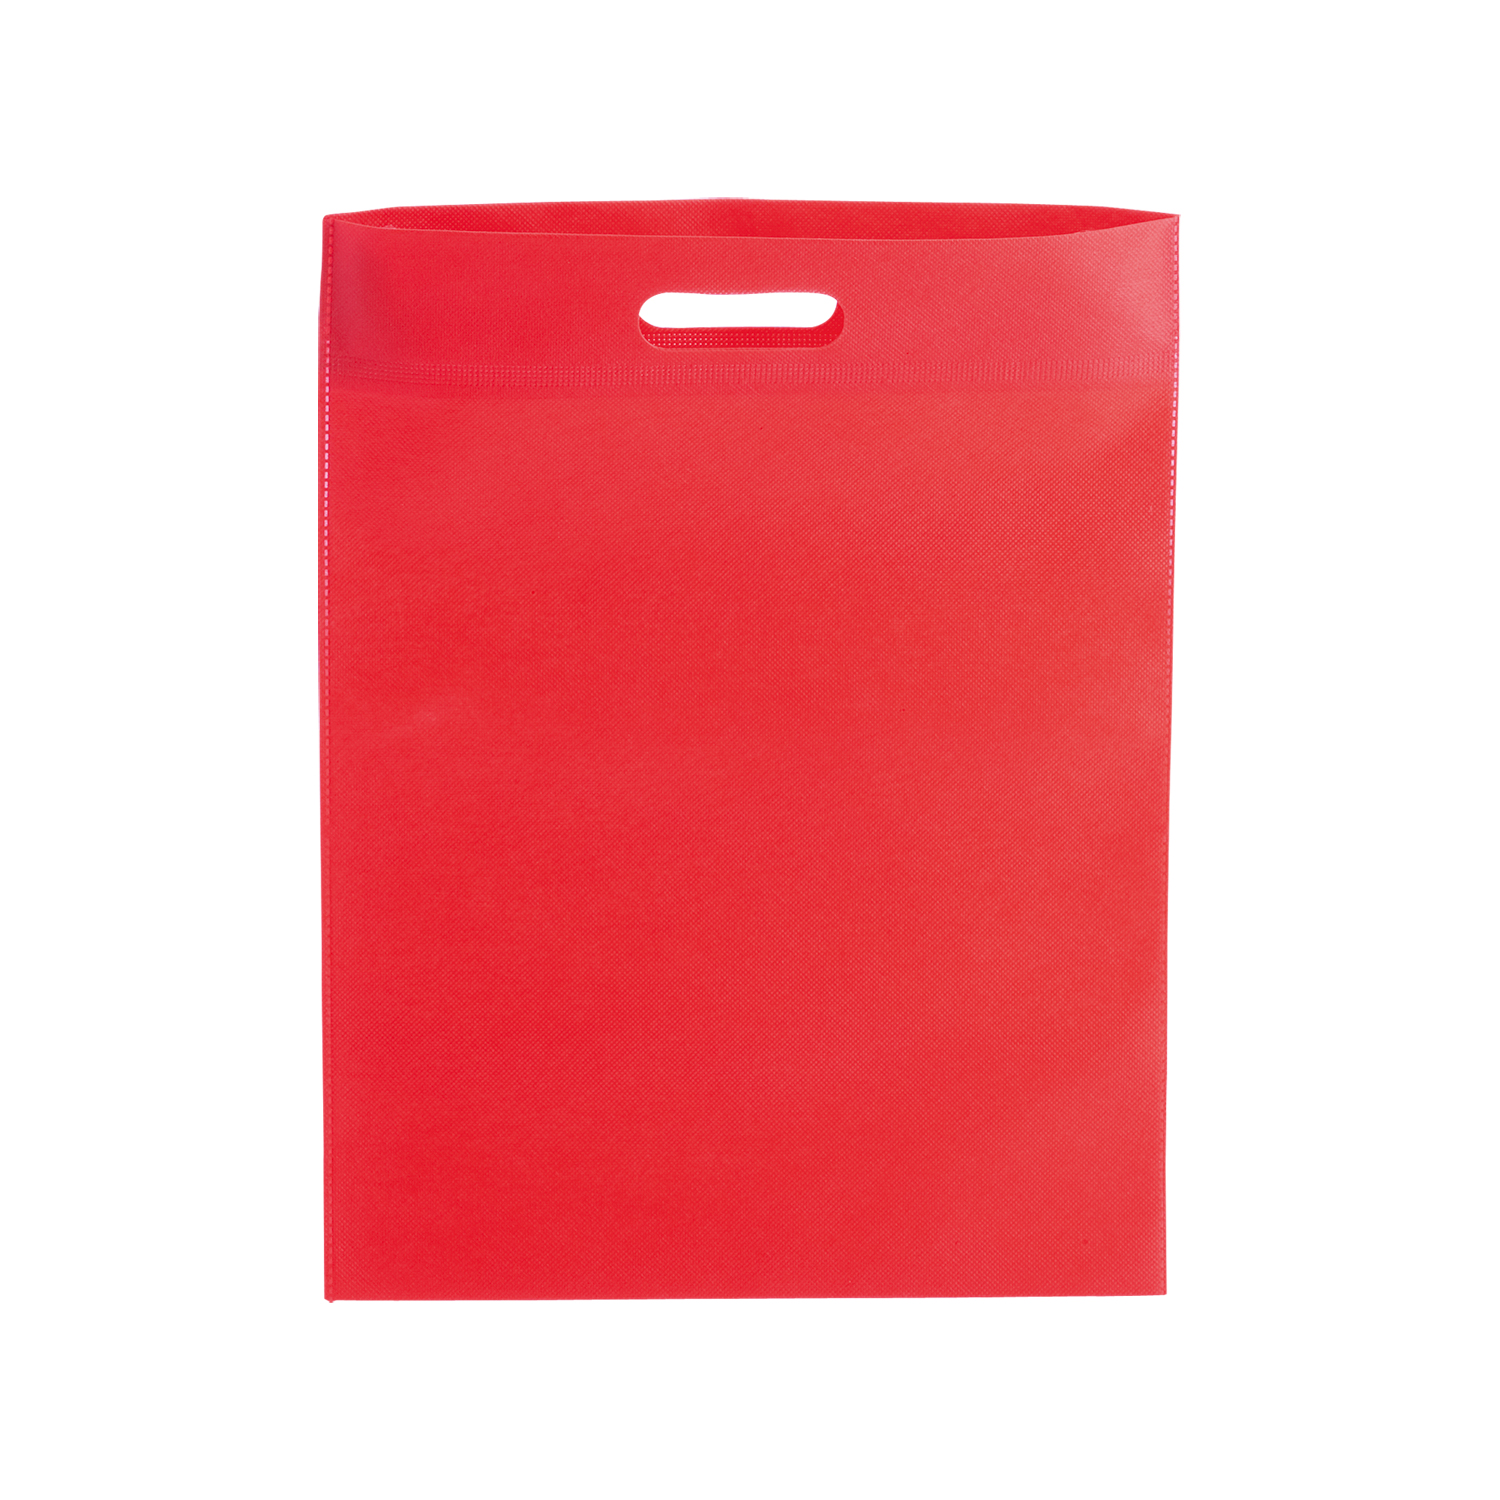 Shopping Bag 022 (Non-woven shopping bag) - hmi17022-04 (Red)